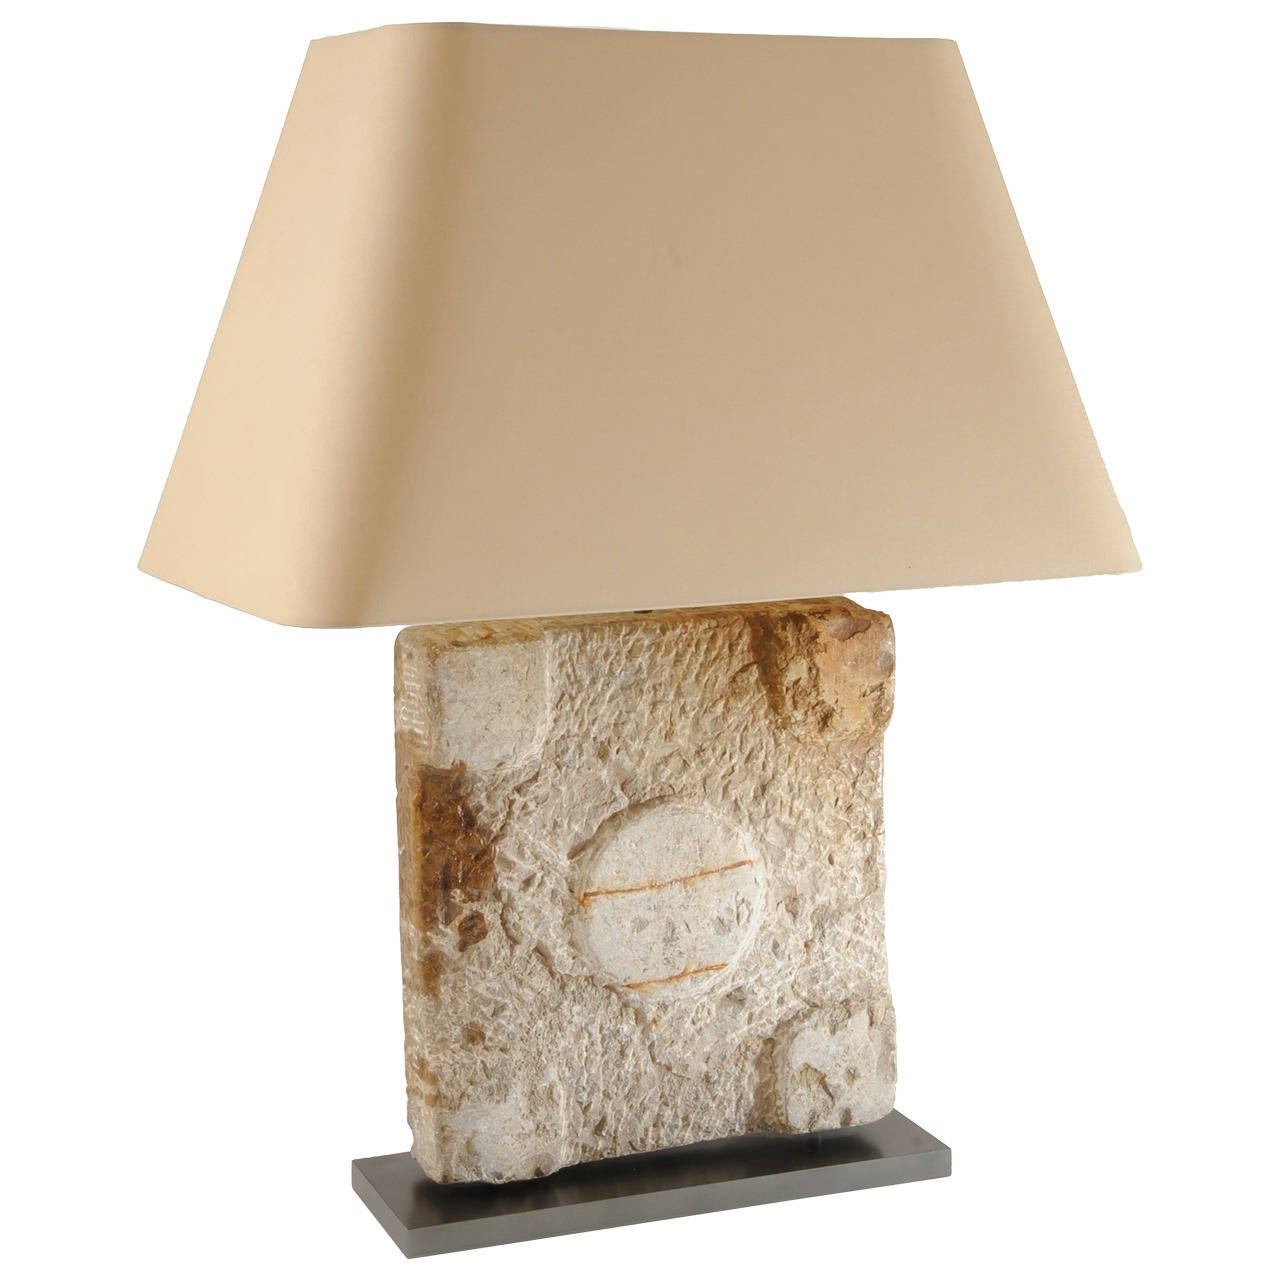 Stone Architectural Element Roman Column Base Lamp At 1stdibs